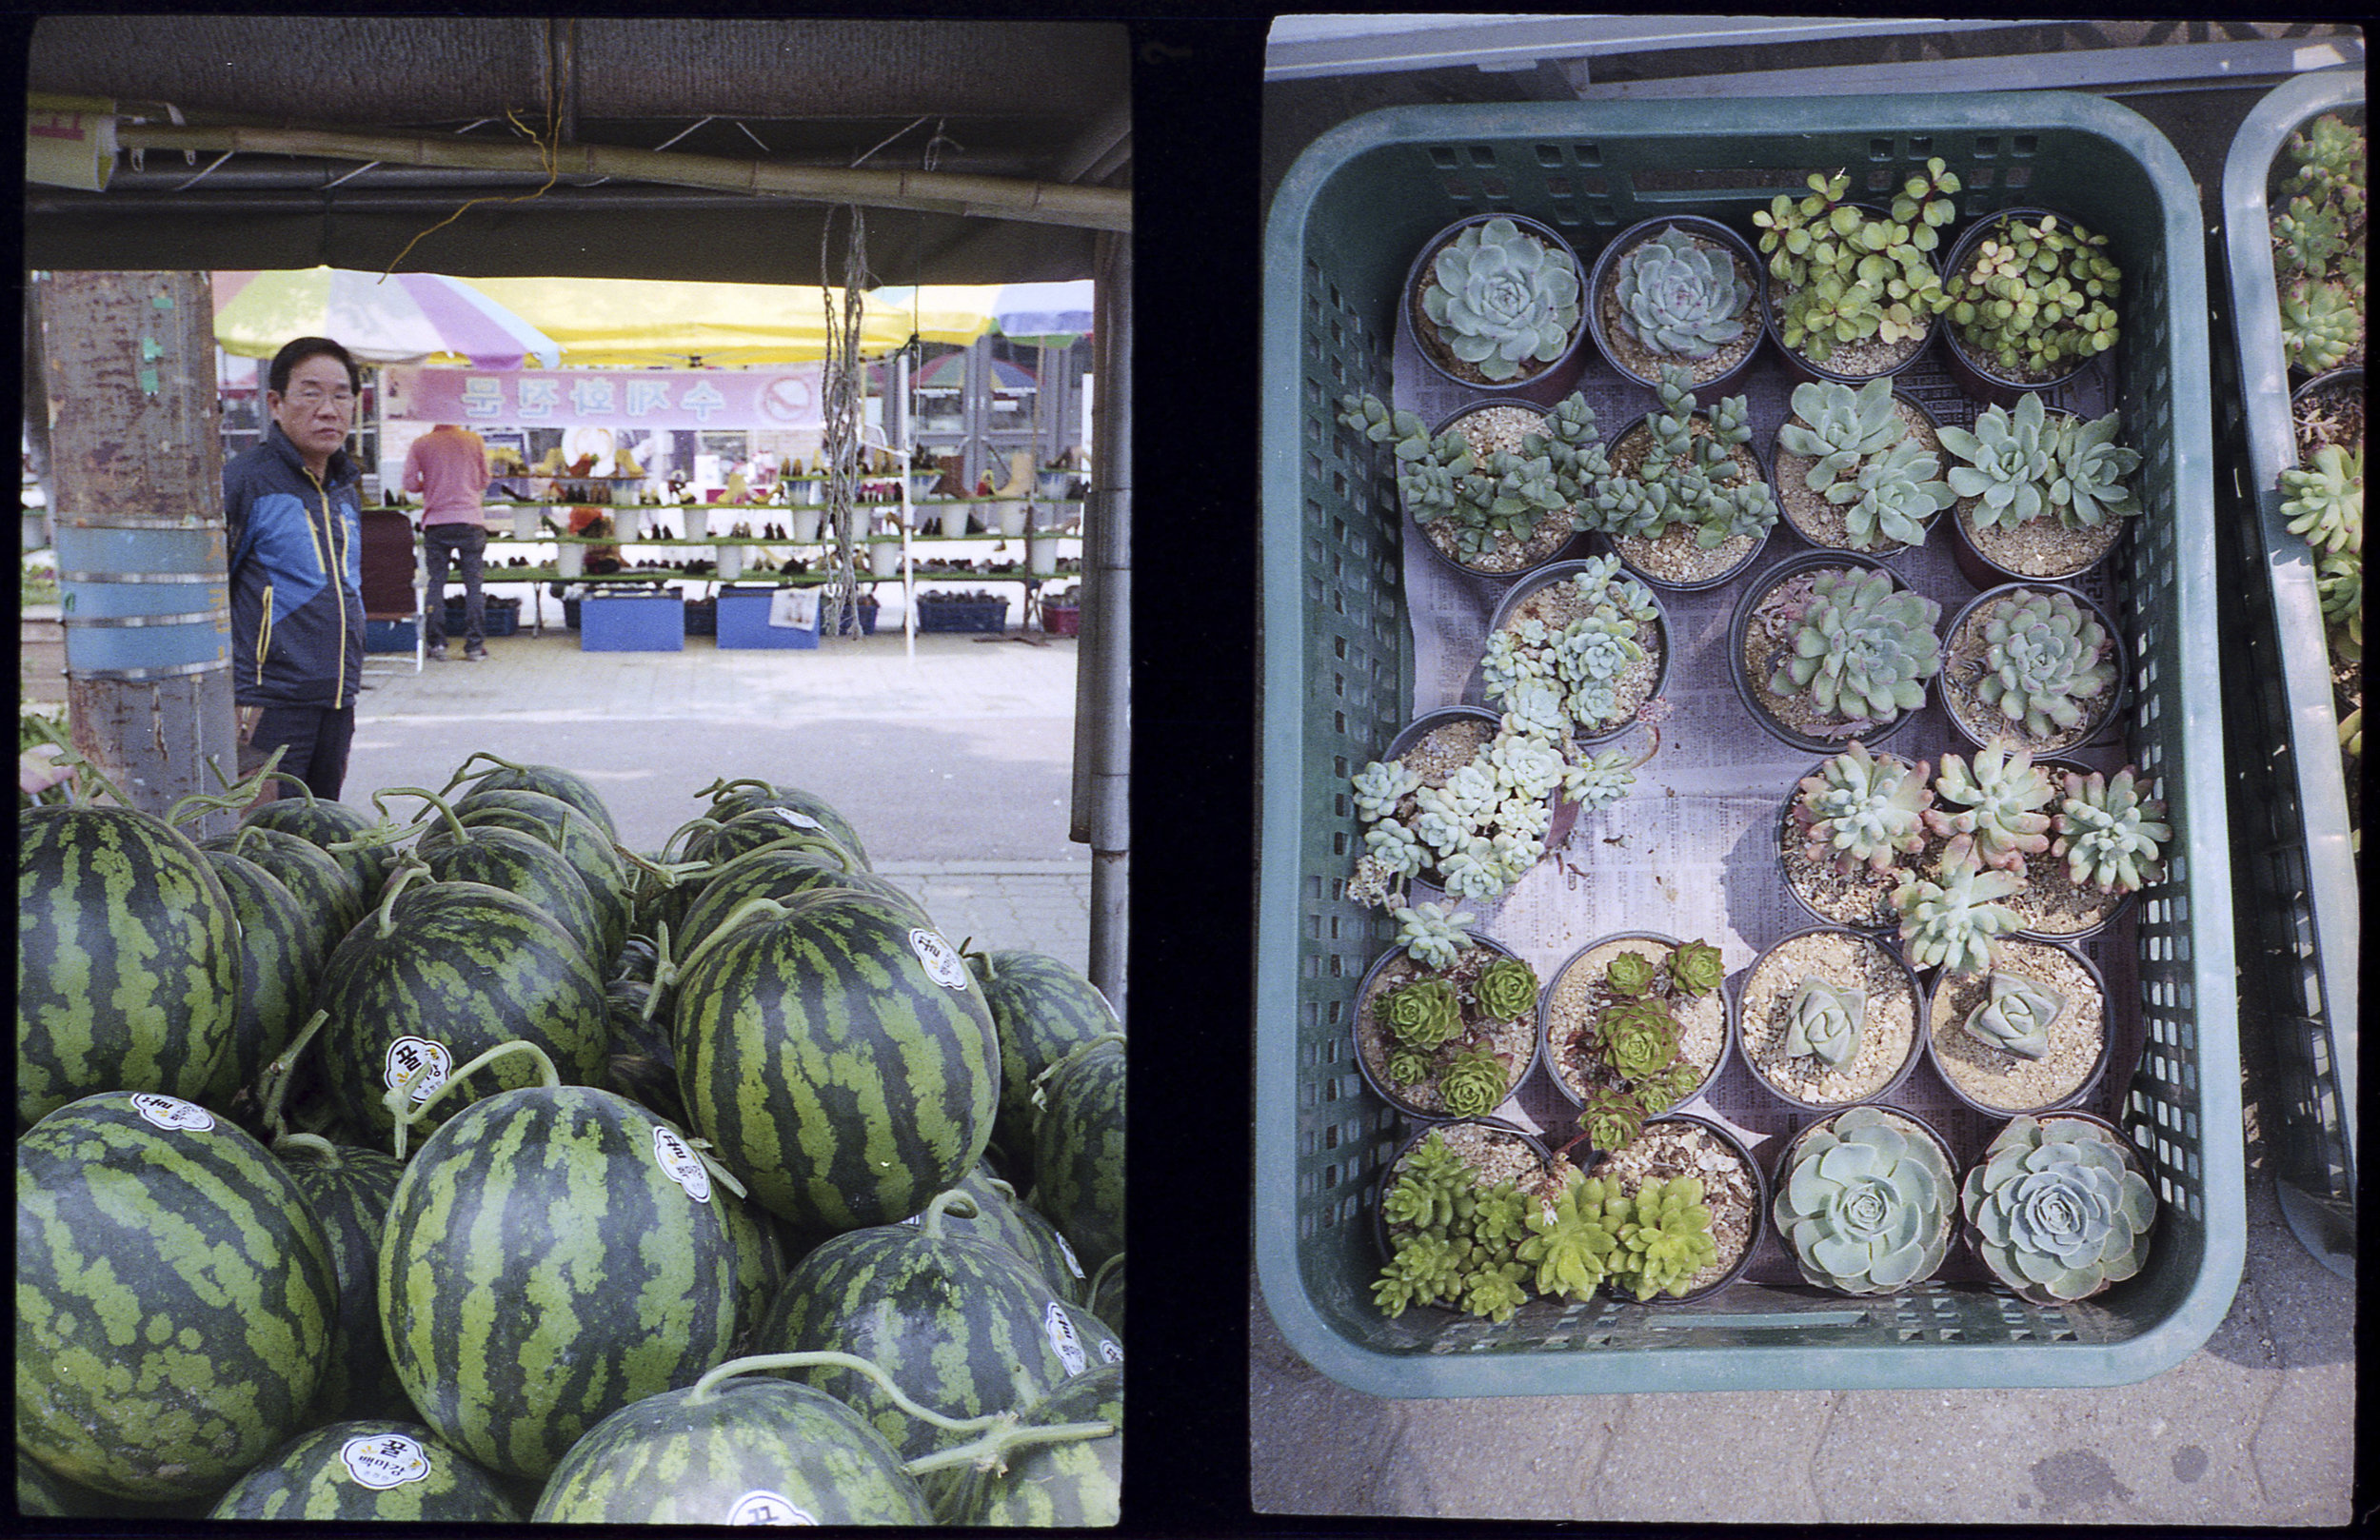 Watermelons and Succulents